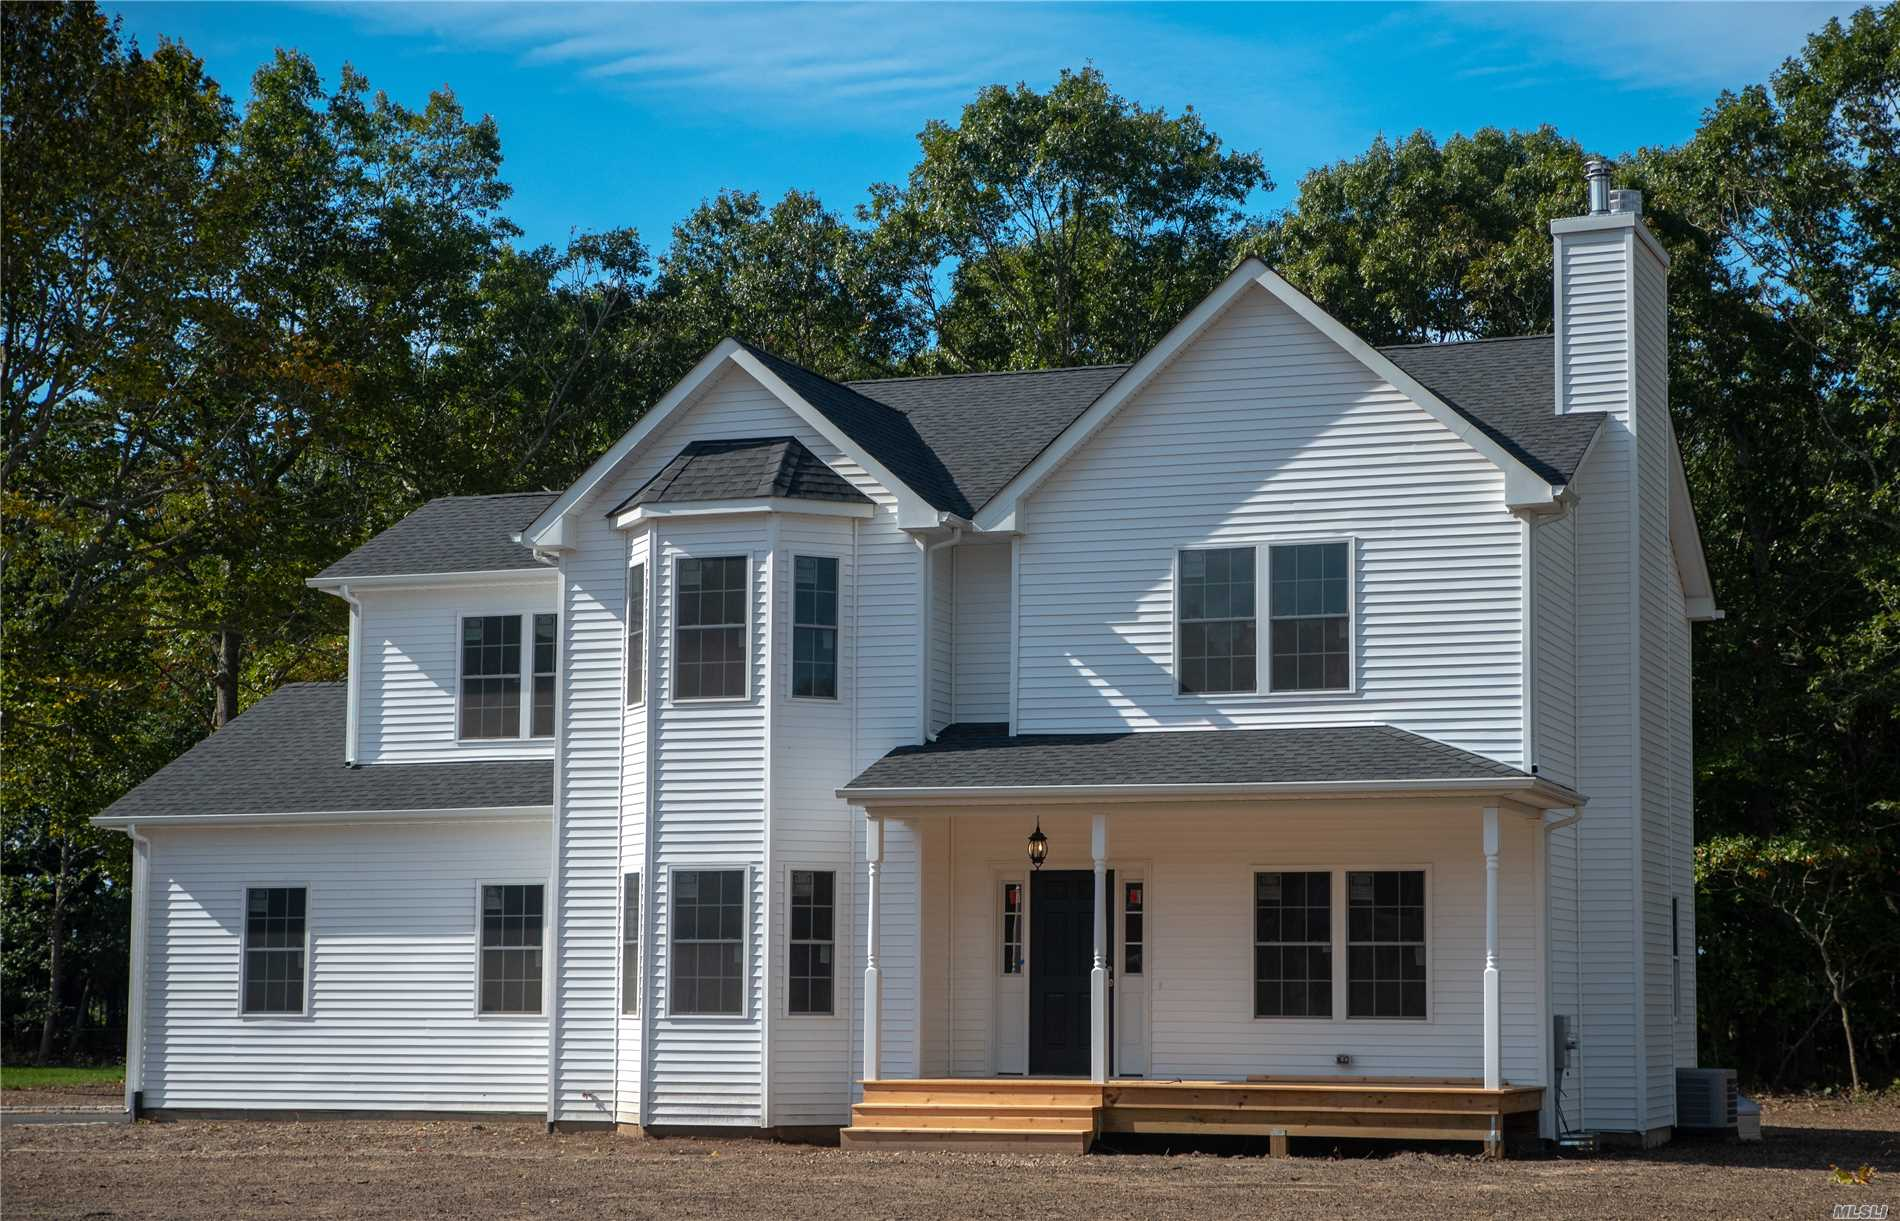 Brand New 27 Lot Subdivision, All Lot's 3/4 Acre+ & Back Up To Open Space. This Sycamore1 Model Inc's Standard Features Such As S/S Kit App Pkage,  #1 Oak Flrs, 2 Car Gar, Cac, 9' Ceiling 1st Flr, Full Bsmt, Energy Star Cert & More! Choose From 8 Custom Models $409, 900-$549, 900. Close To Legendary North Fork Wineries, Restaurants & Outlets. Just $5, 000 Down @ Contract.